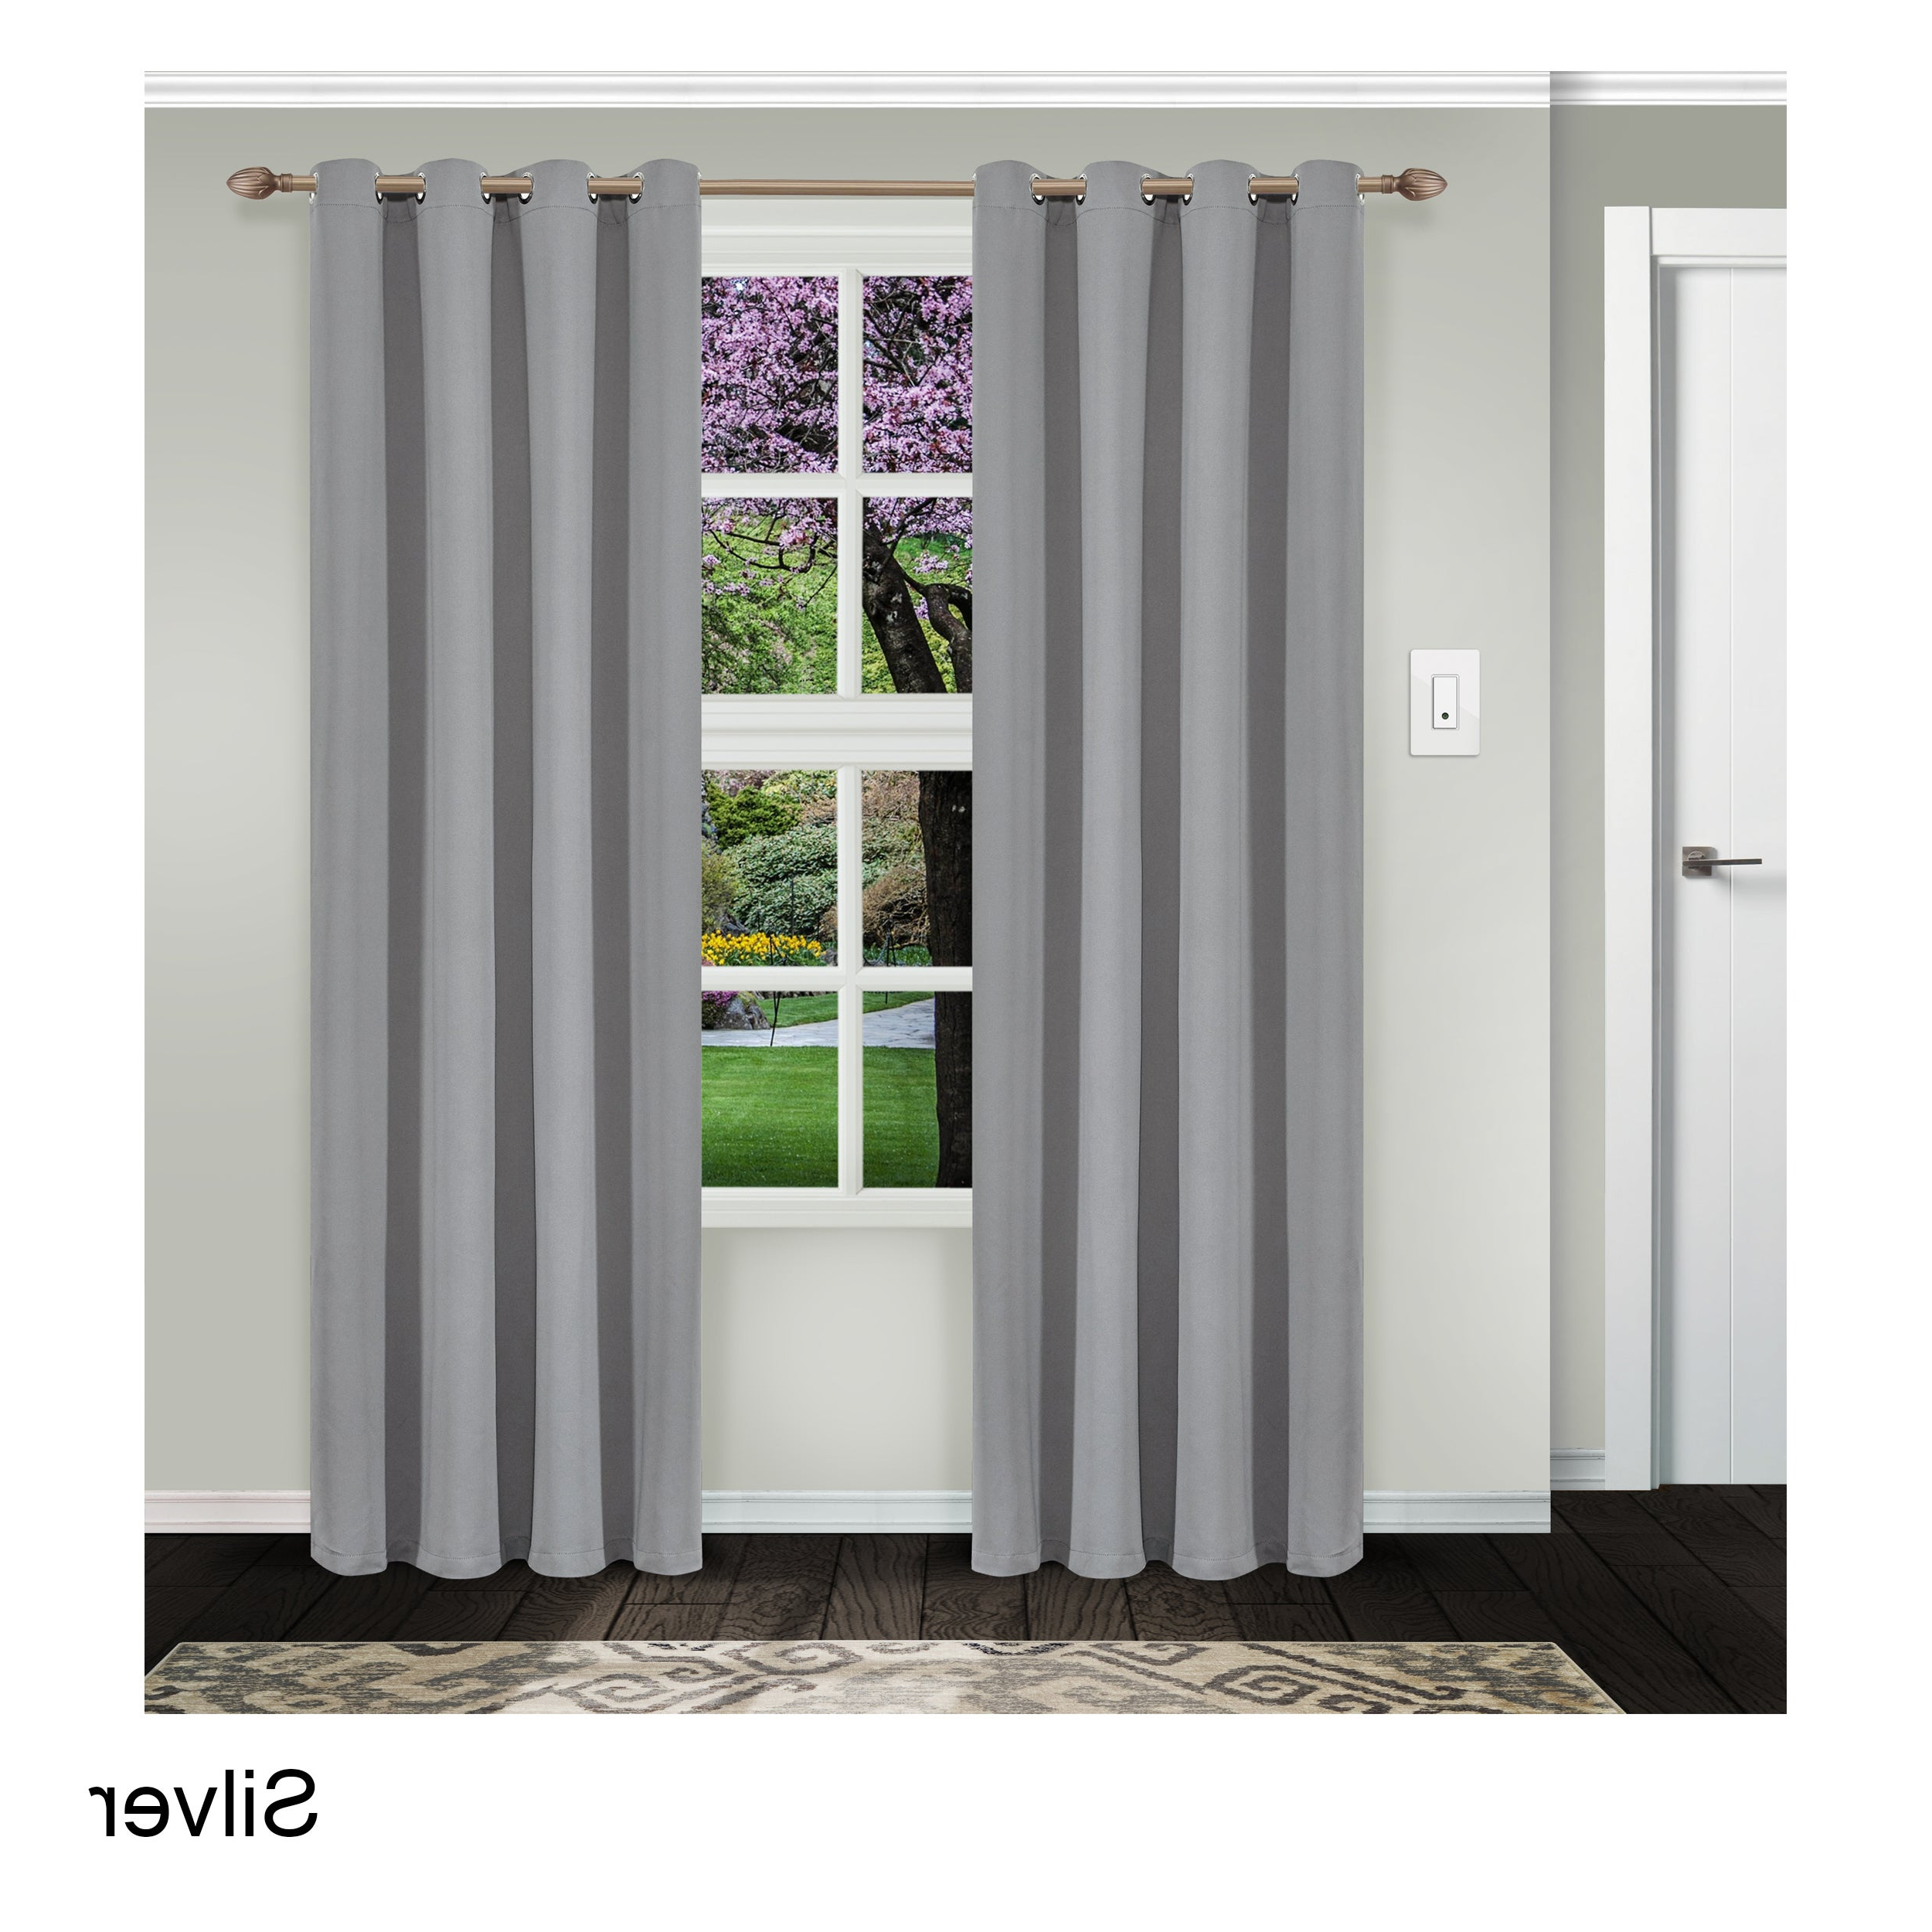 Favorite Superior Solid Insulated Thermal Blackout Grommet Curtain Panel Pairs With Regard To Superior Solid Insulated Thermal Blackout Grommet Curtain Panel Pair (Gallery 3 of 20)